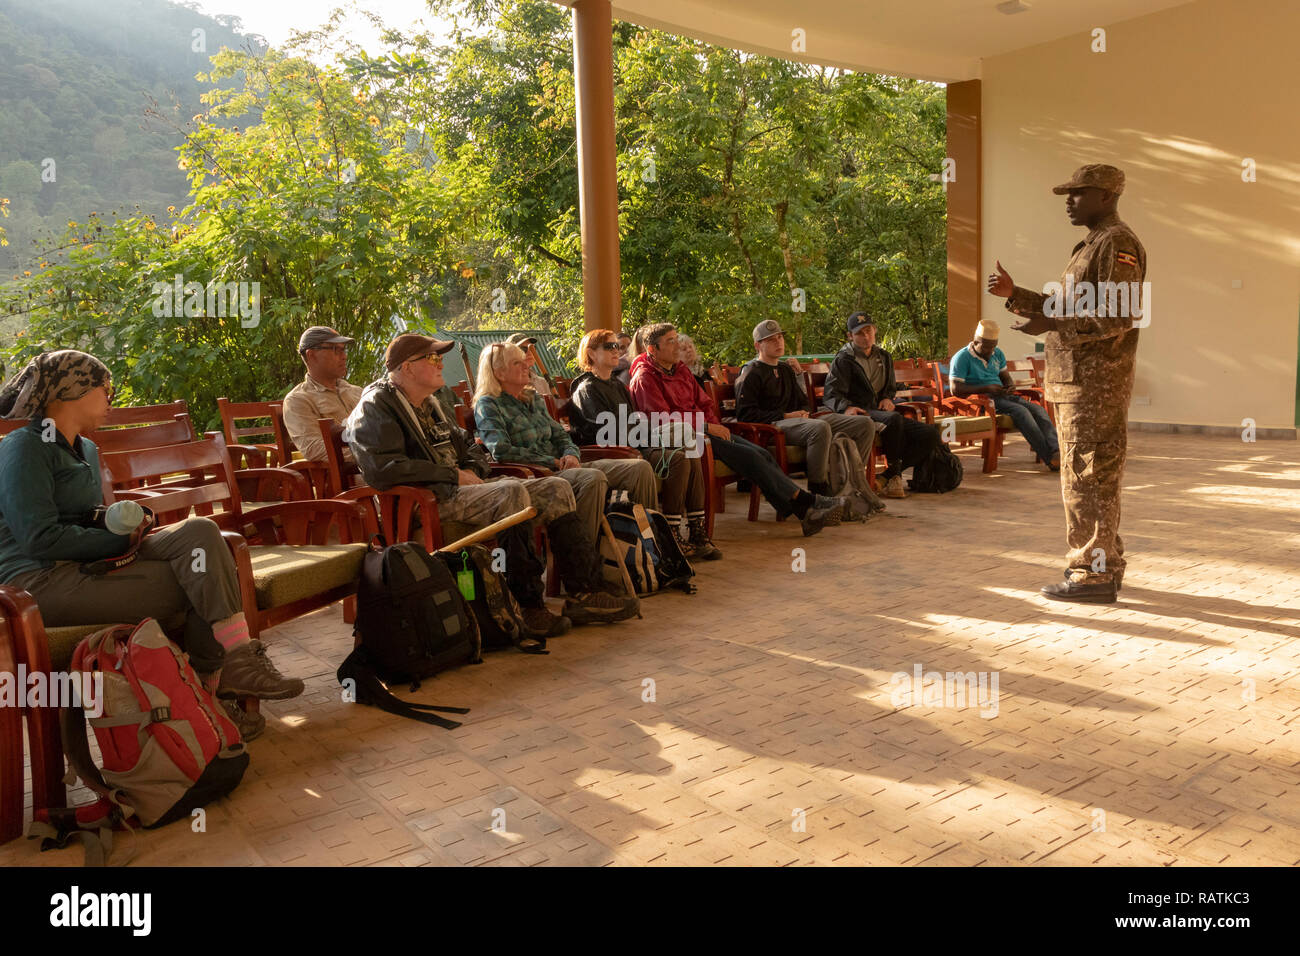 Park ranger explaining rules for gorilla trekking to tourists on safari, Bwindi Impenetrable Forest National Park, Bwindi, Uganda, Africa - Stock Image